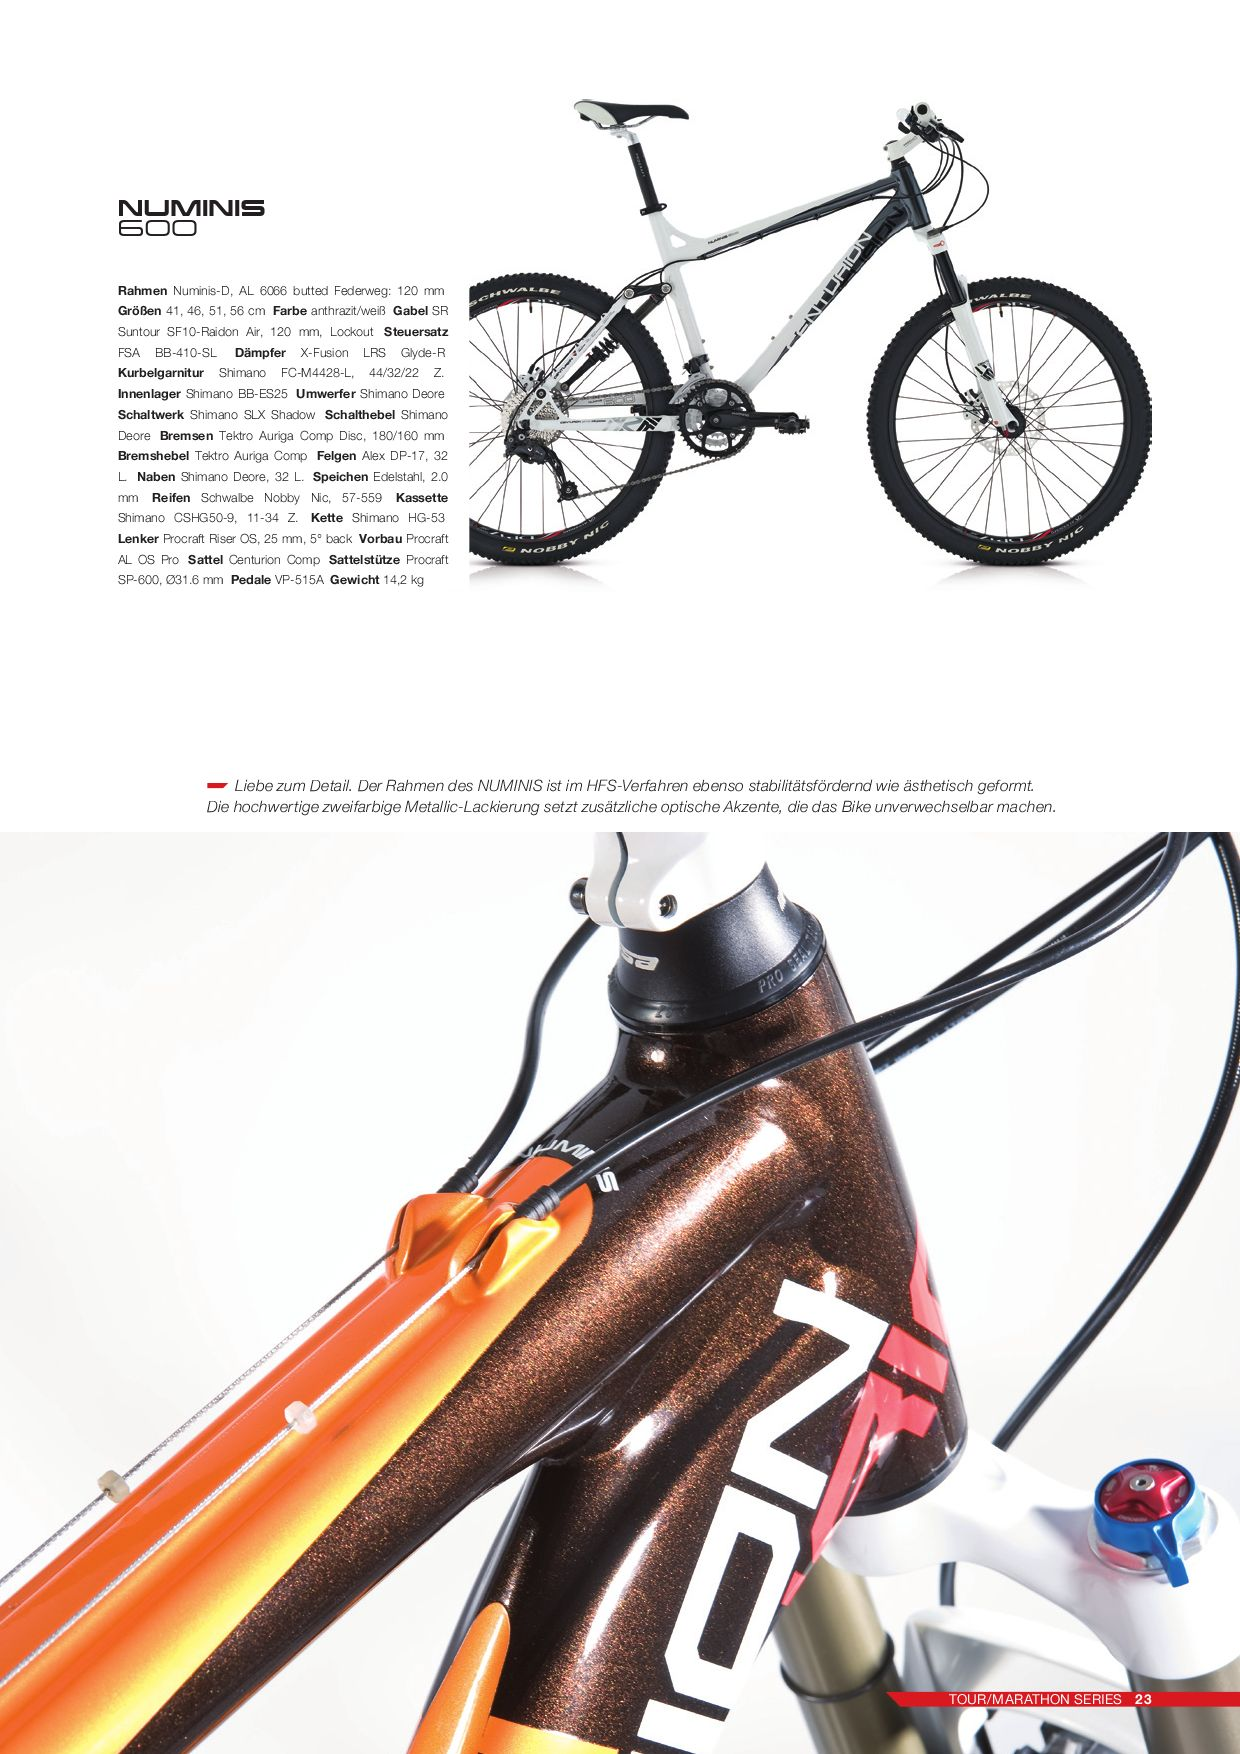 Centurion Bikes Katalog 2010 by MERIDA & CENTURION Germany GmbH - issuu